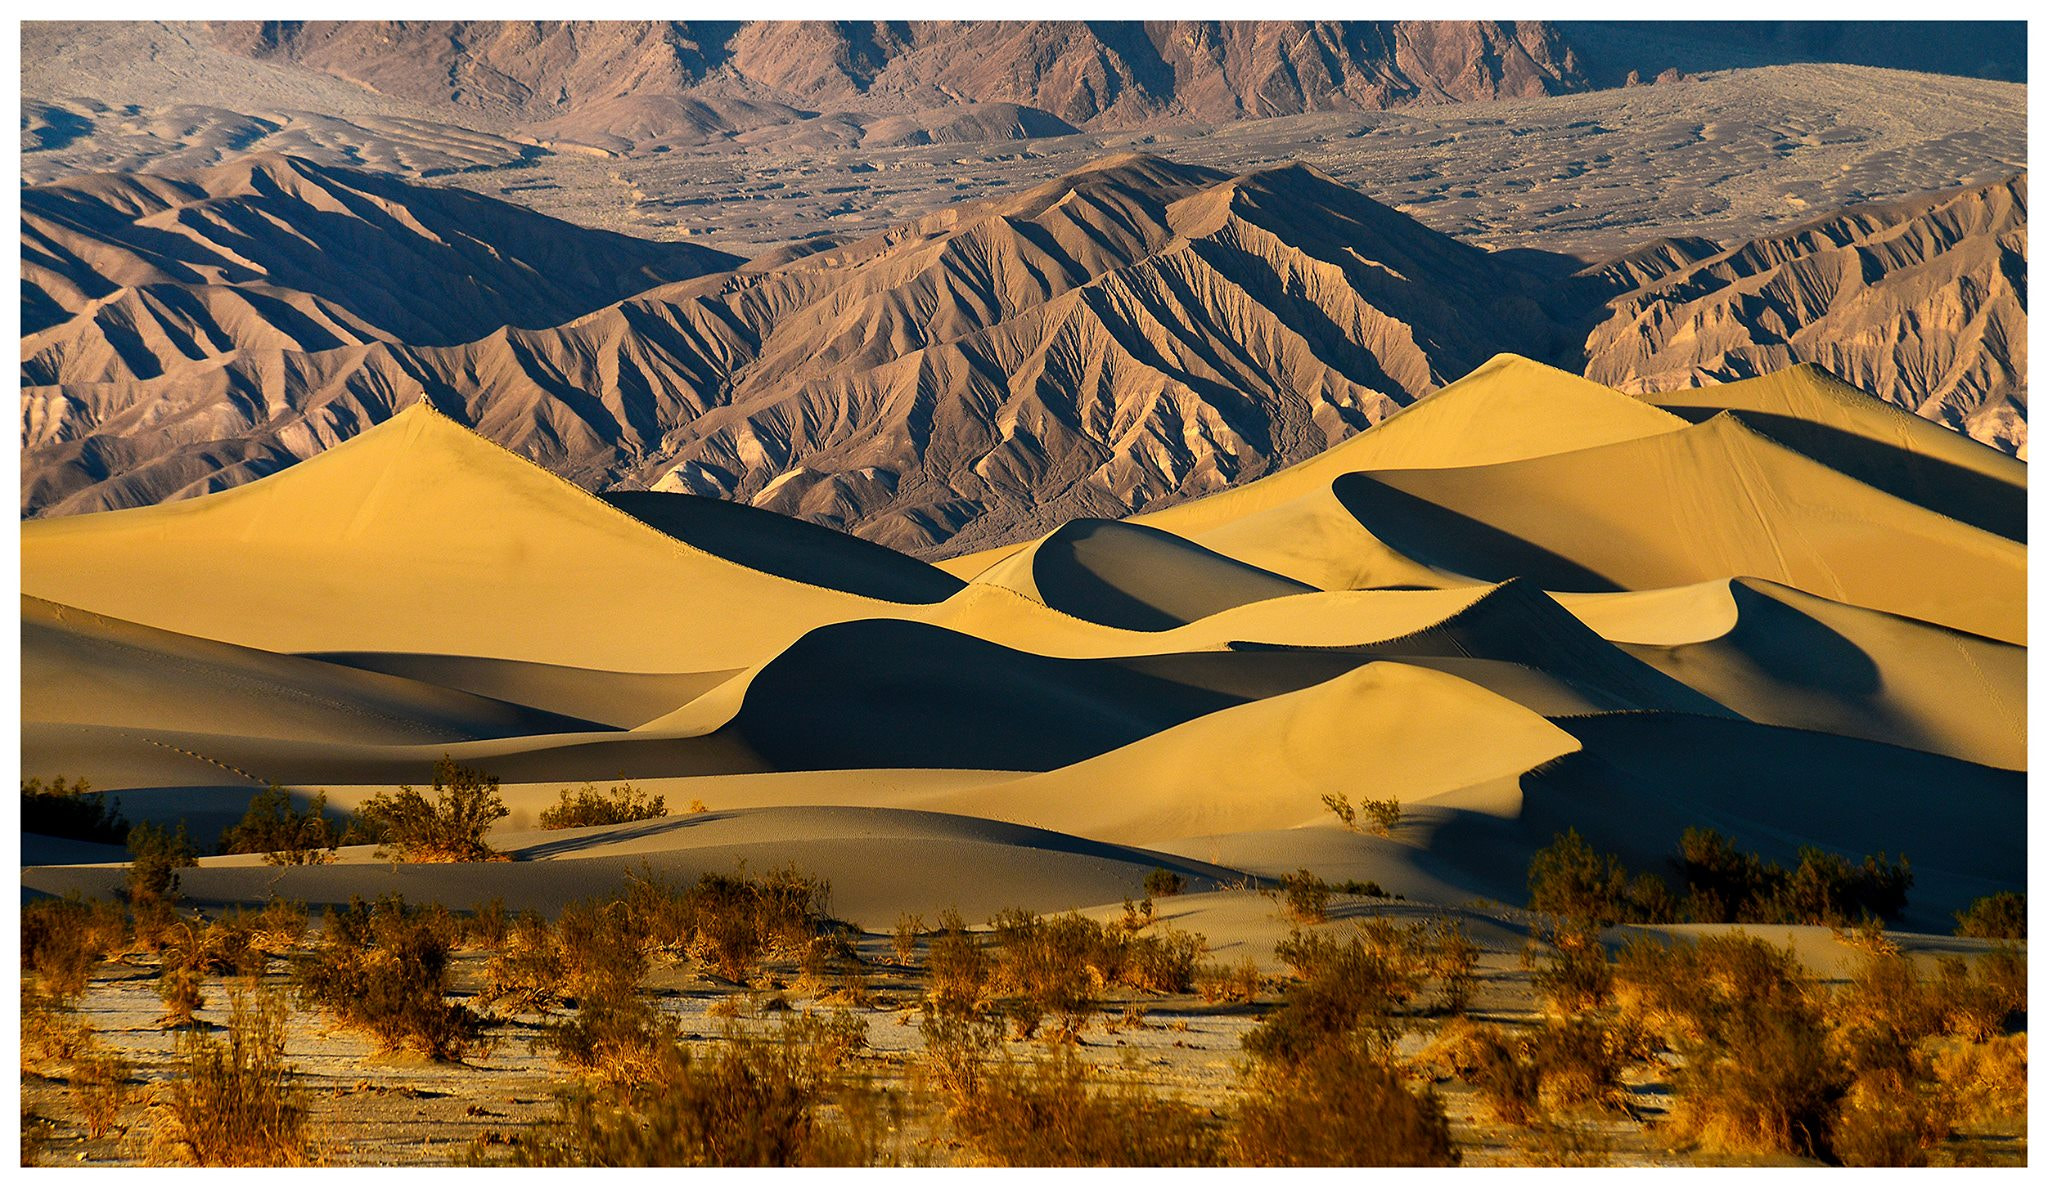 Photograph Dunes of Time by Sebastian Ventrone on 500px